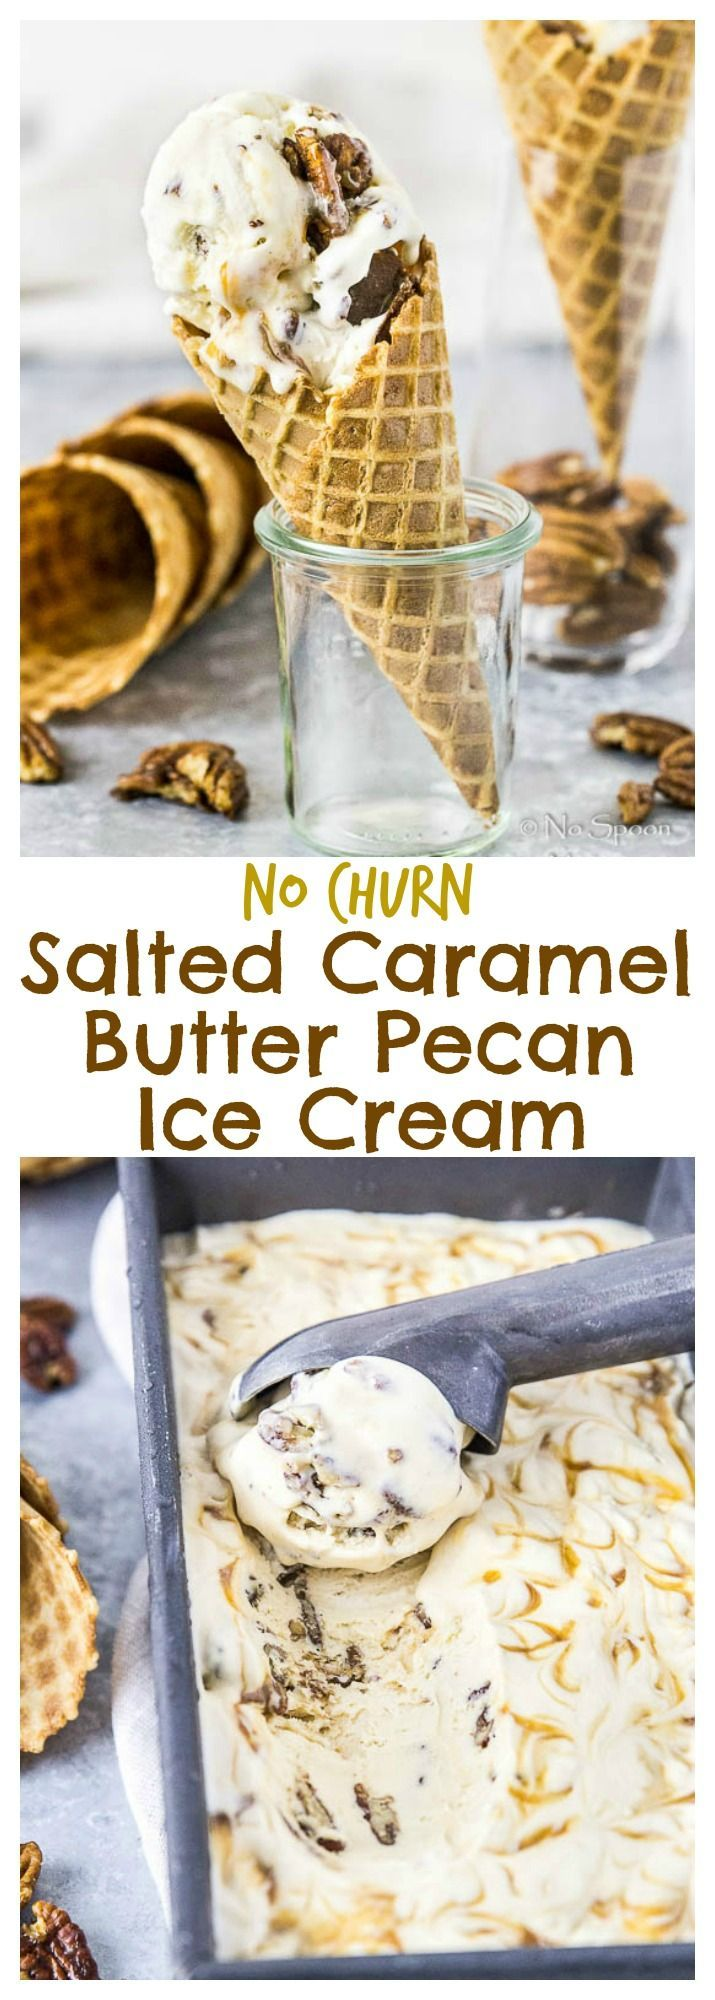 No Churn Salted Caramel Butter Pecan Ice Cream.  No Machine or Stove Top Needed to Make This Ice Cream!